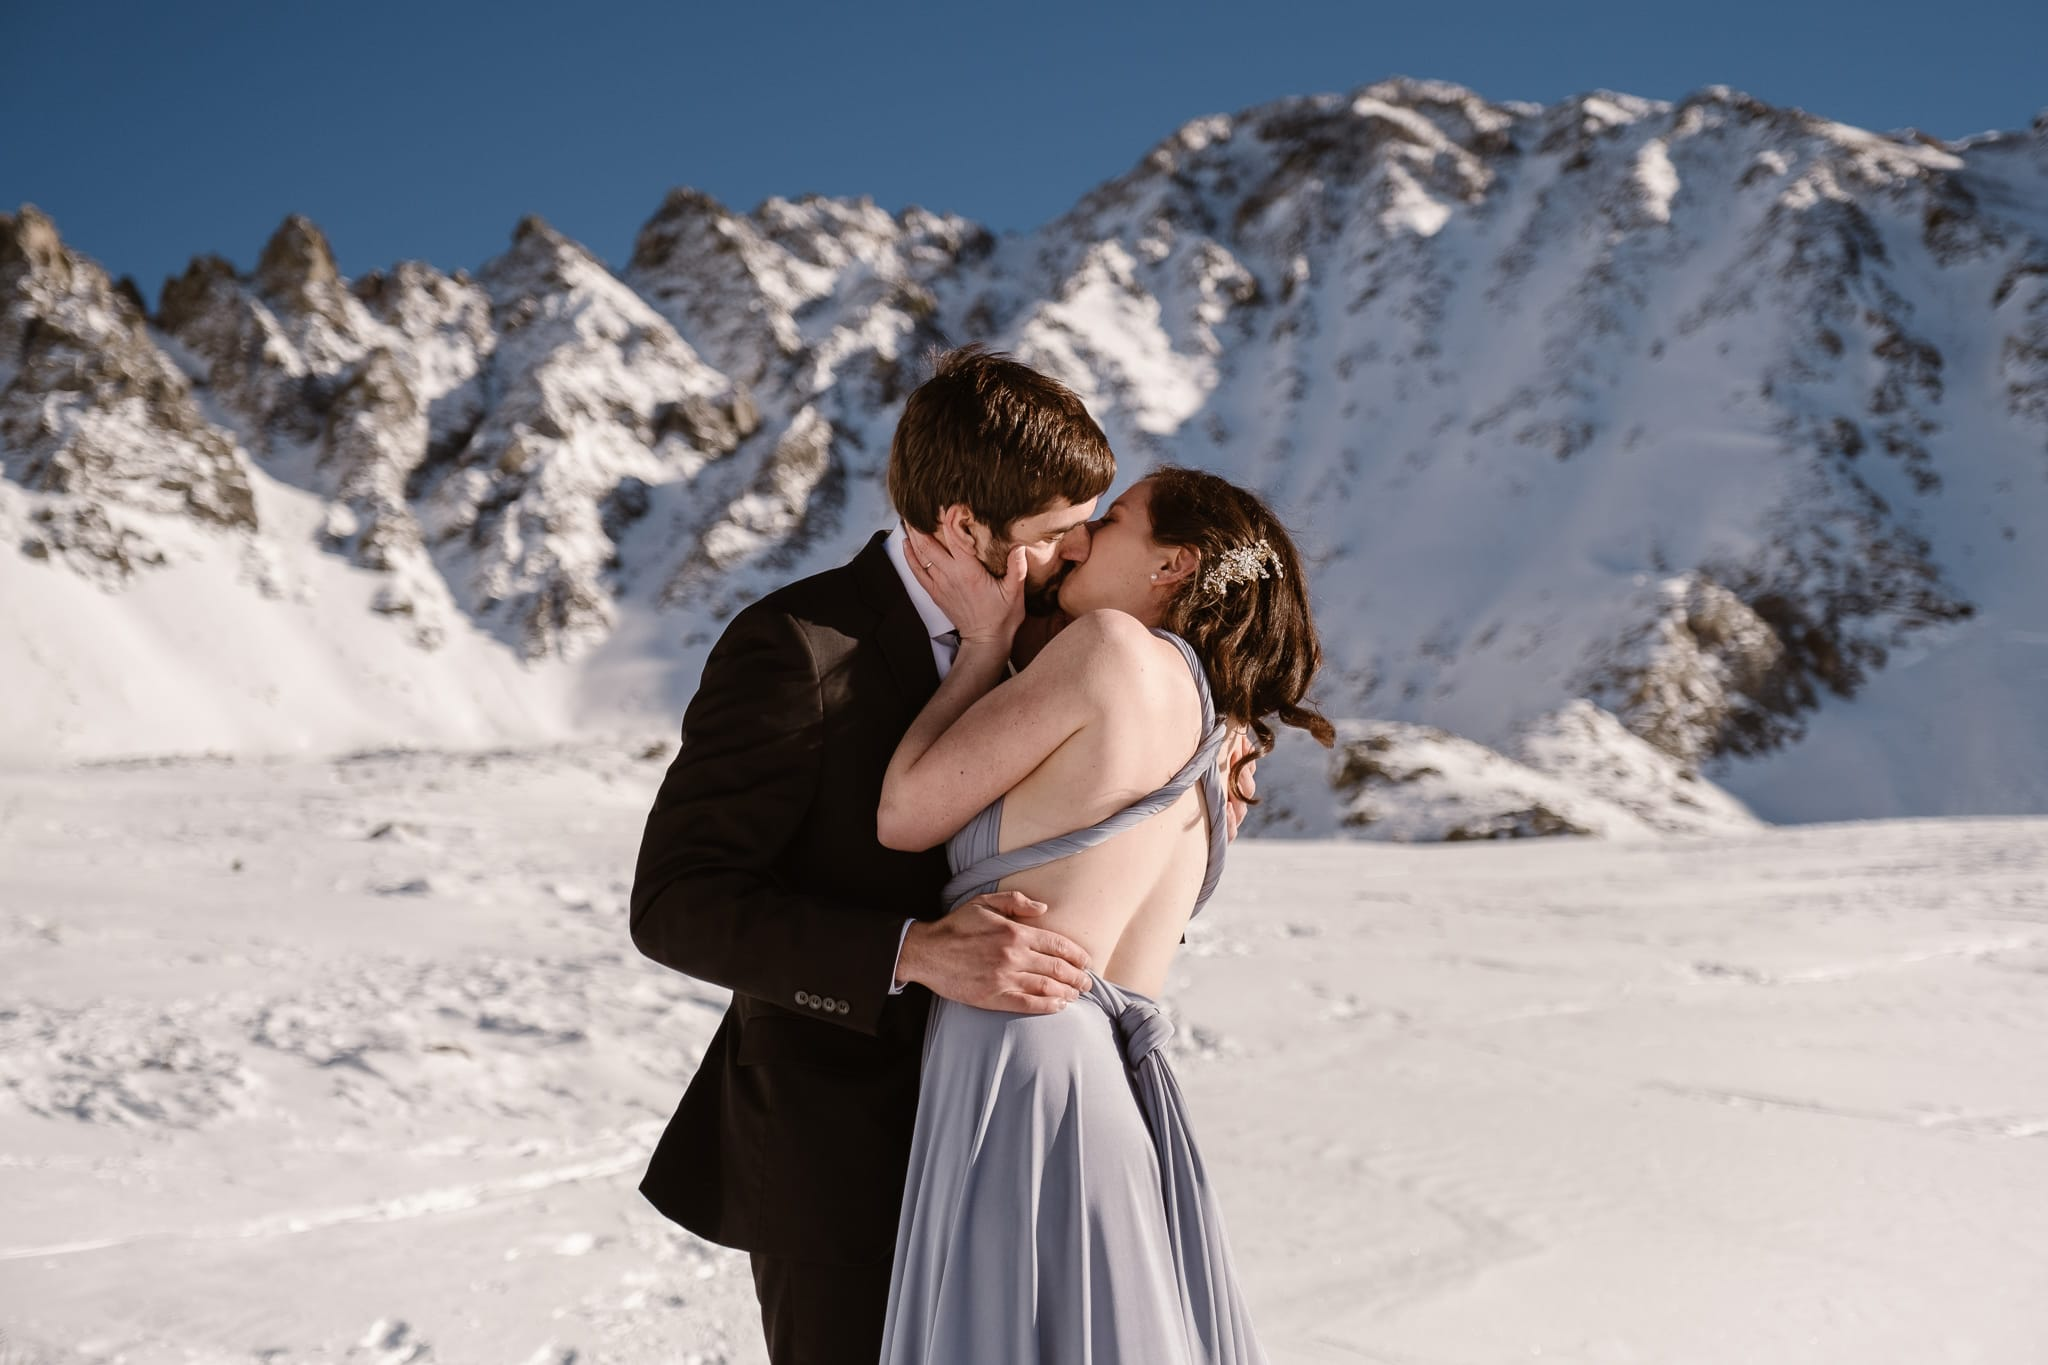 Backcountry skiing elopement, Colorado adventure wedding photographer, bride and groom kissing in snow covered mountains, best month to elope in Colorado, January elopement